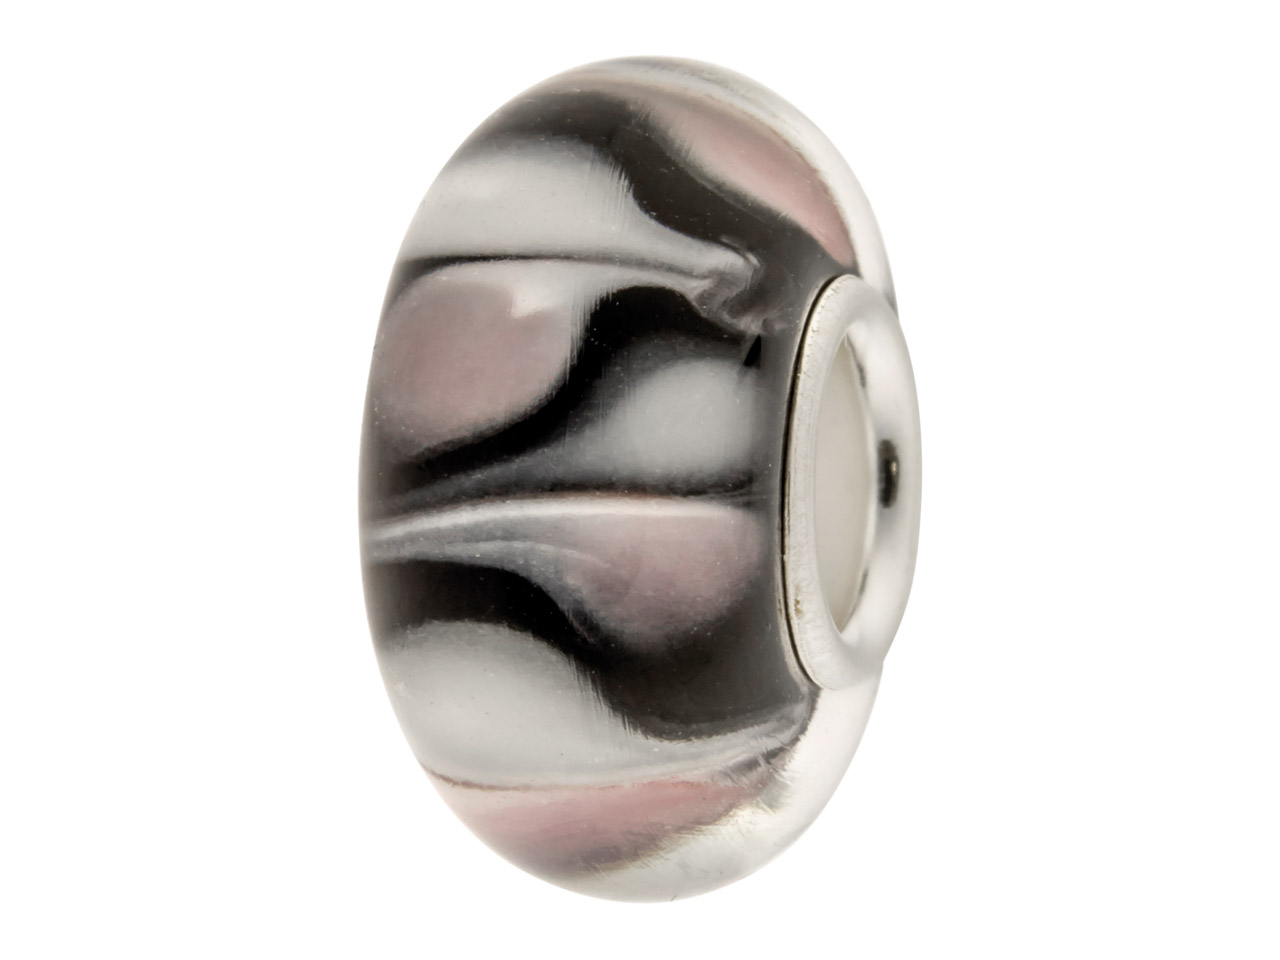 Glass Charm Bead, Black With Brown And White Large Dots, Sterling     Silver Core